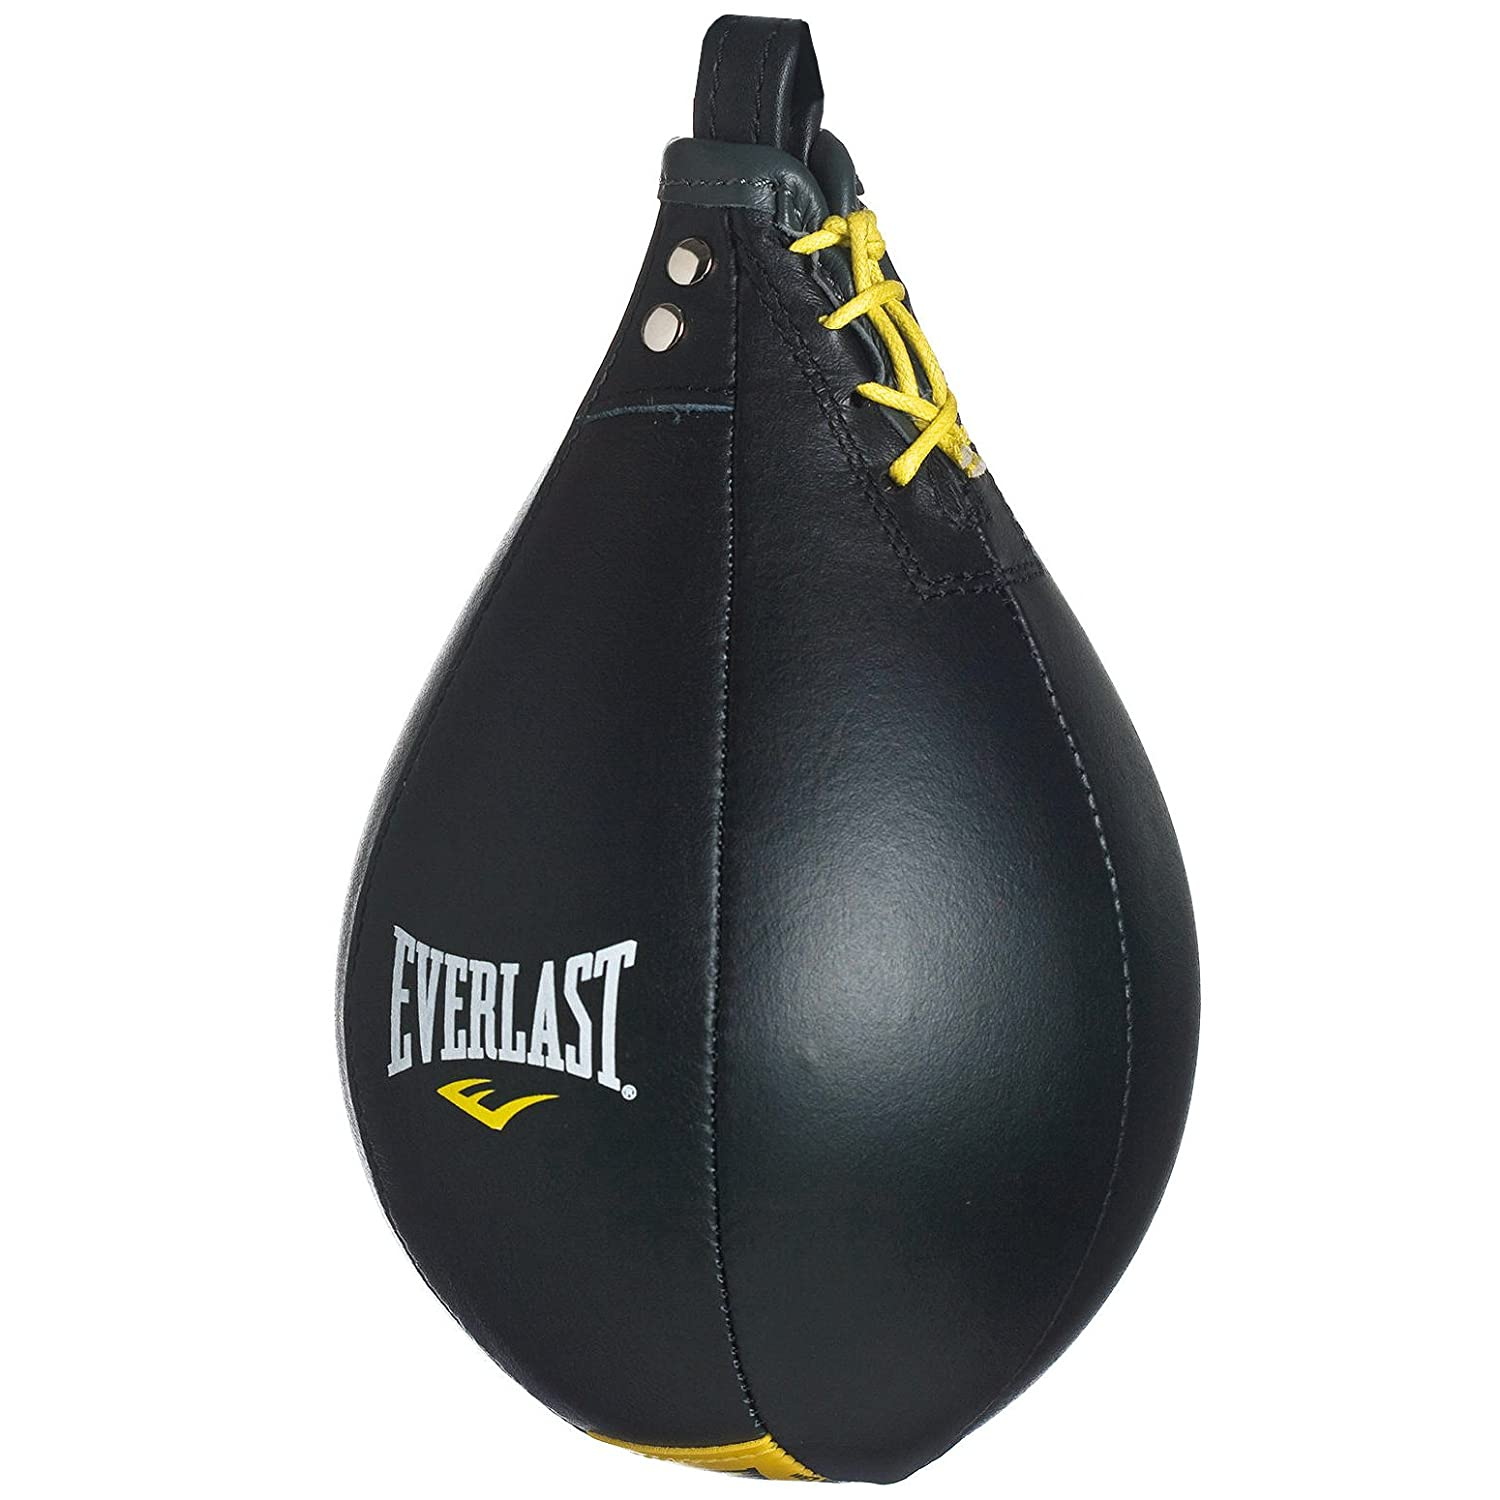 Everlast Leather - pera de Boxeo Accell Fitness 4241 / 4242